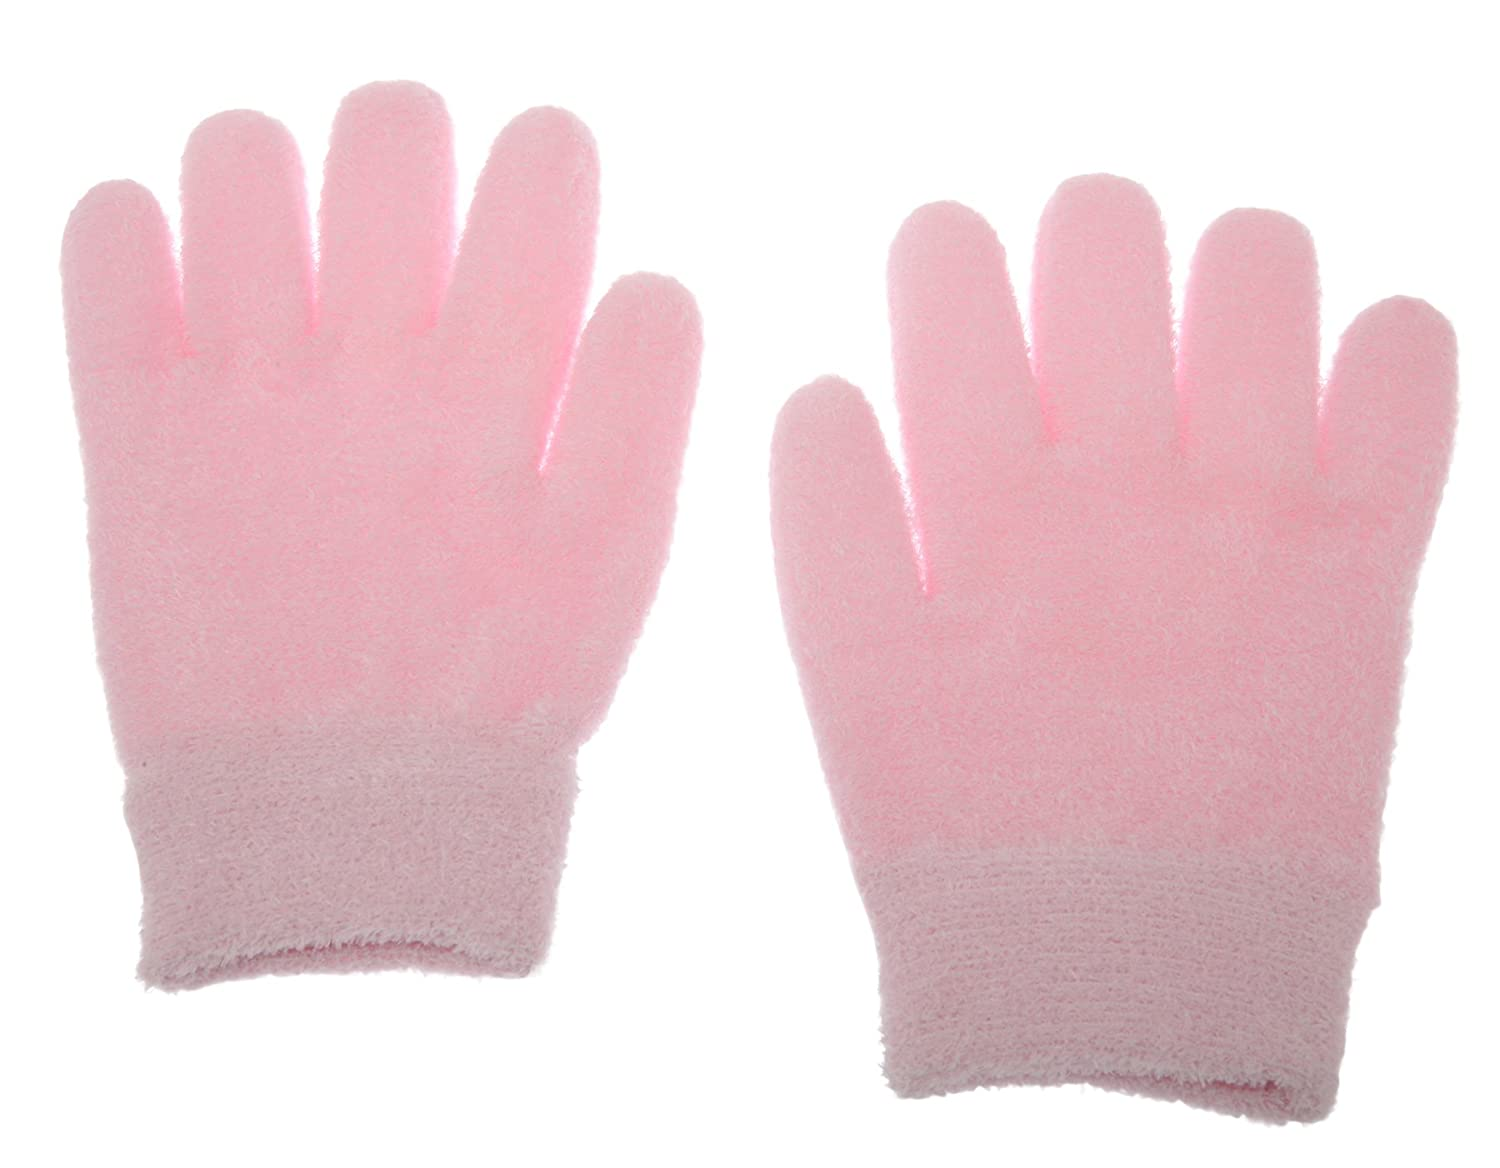 Deluxe Comfort Mosi-Glov-Feat-Pink Lotion Gloves(Feather Yarn) Gel-Lined Moisturizing Gloves, 1 Pair, Pink SPA Gloves